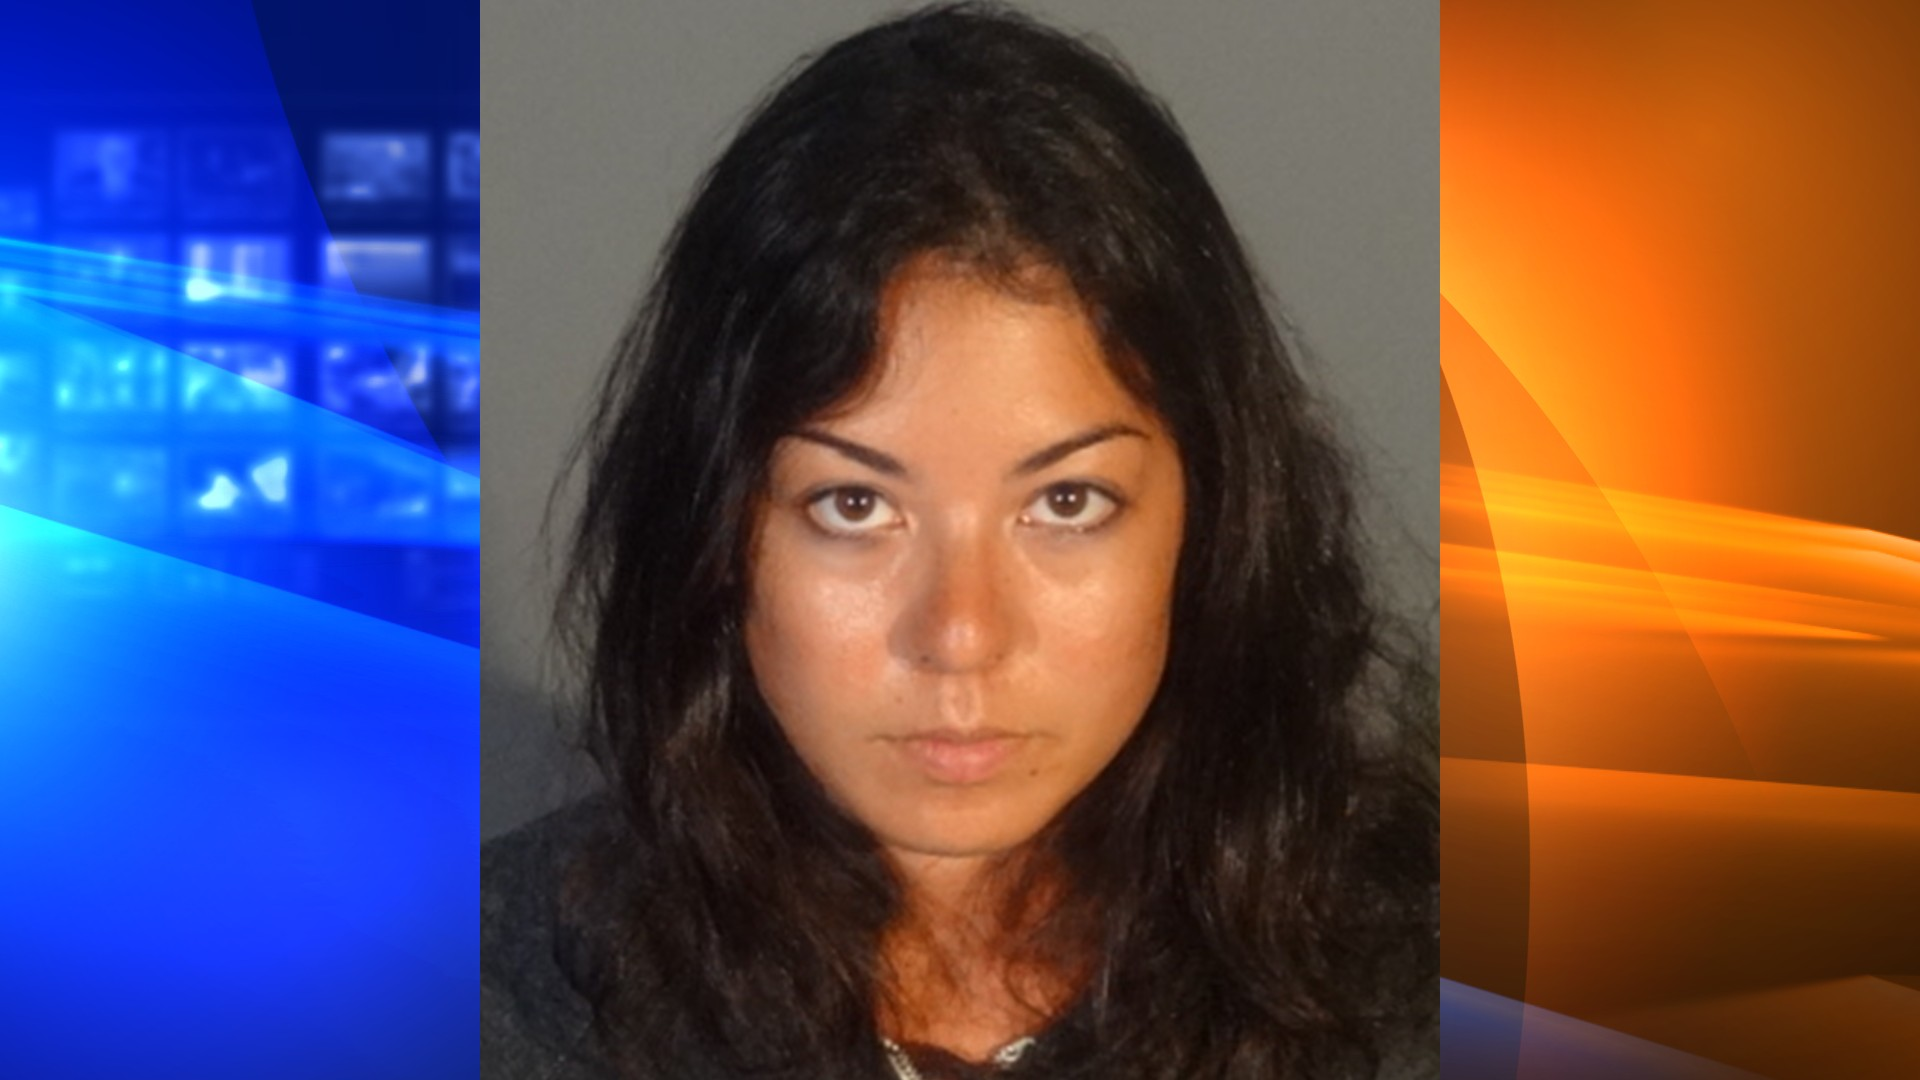 Amanda Van Dusye, 30, is seen in a booking photo released by the Santa Monica Police Department on June 19, 2020.